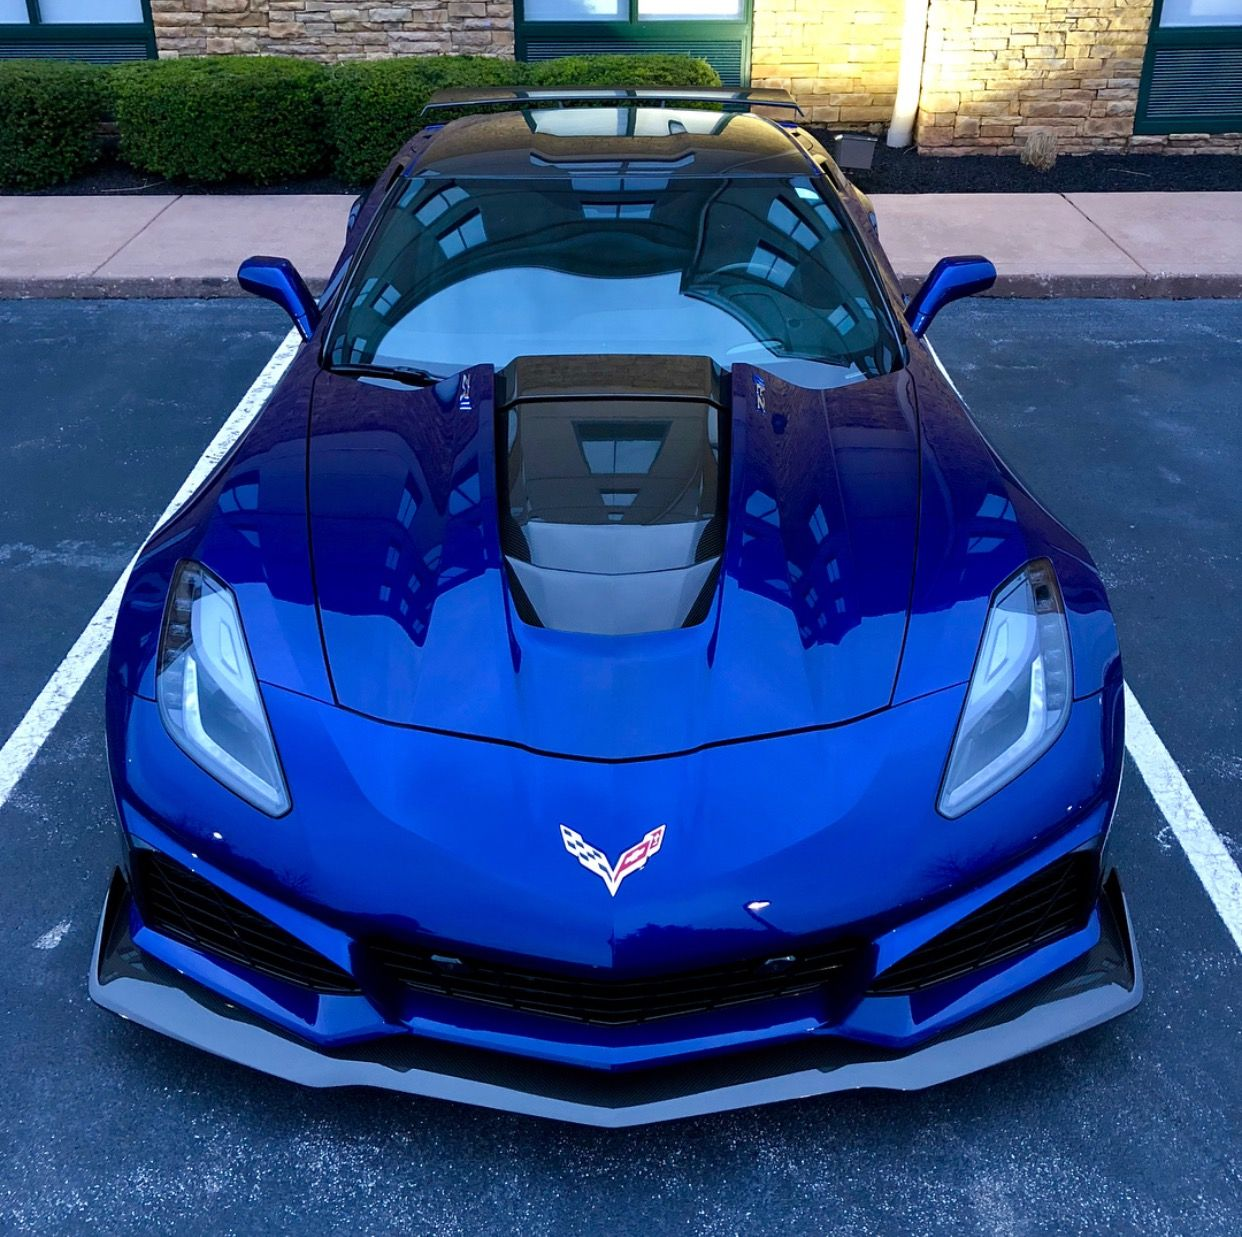 Chevrolet Corvette C7 Zr1 Painted In Admiral Blue Photo Taken By Nickrenly On Instagram Chevrolet Corvette Chevrolet Corvette C1 Corvette